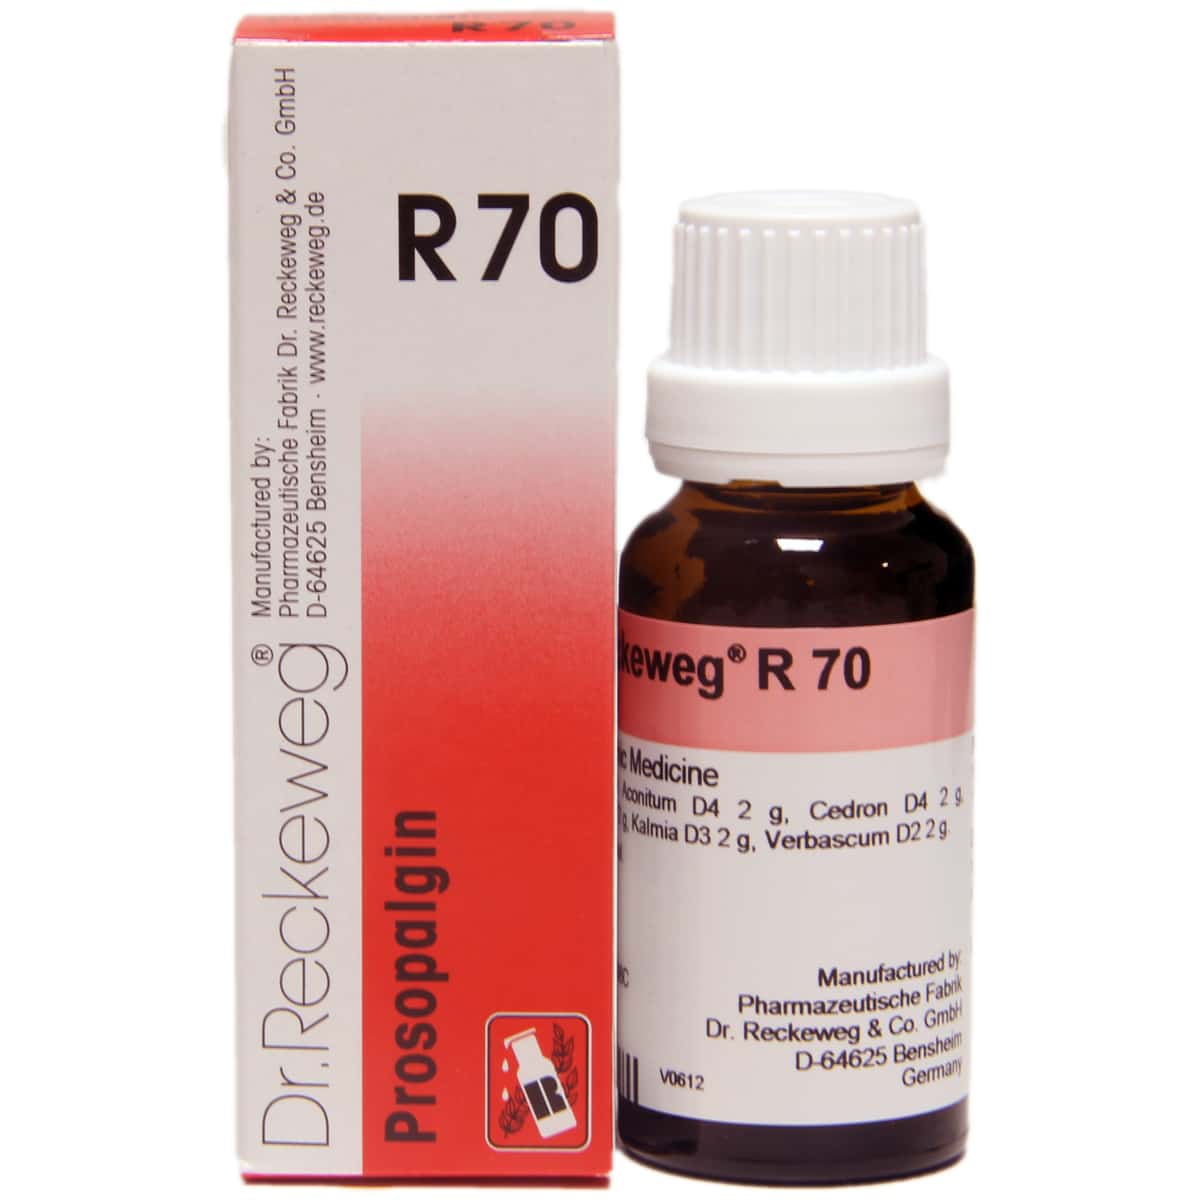 R70-Homeopathicology.com